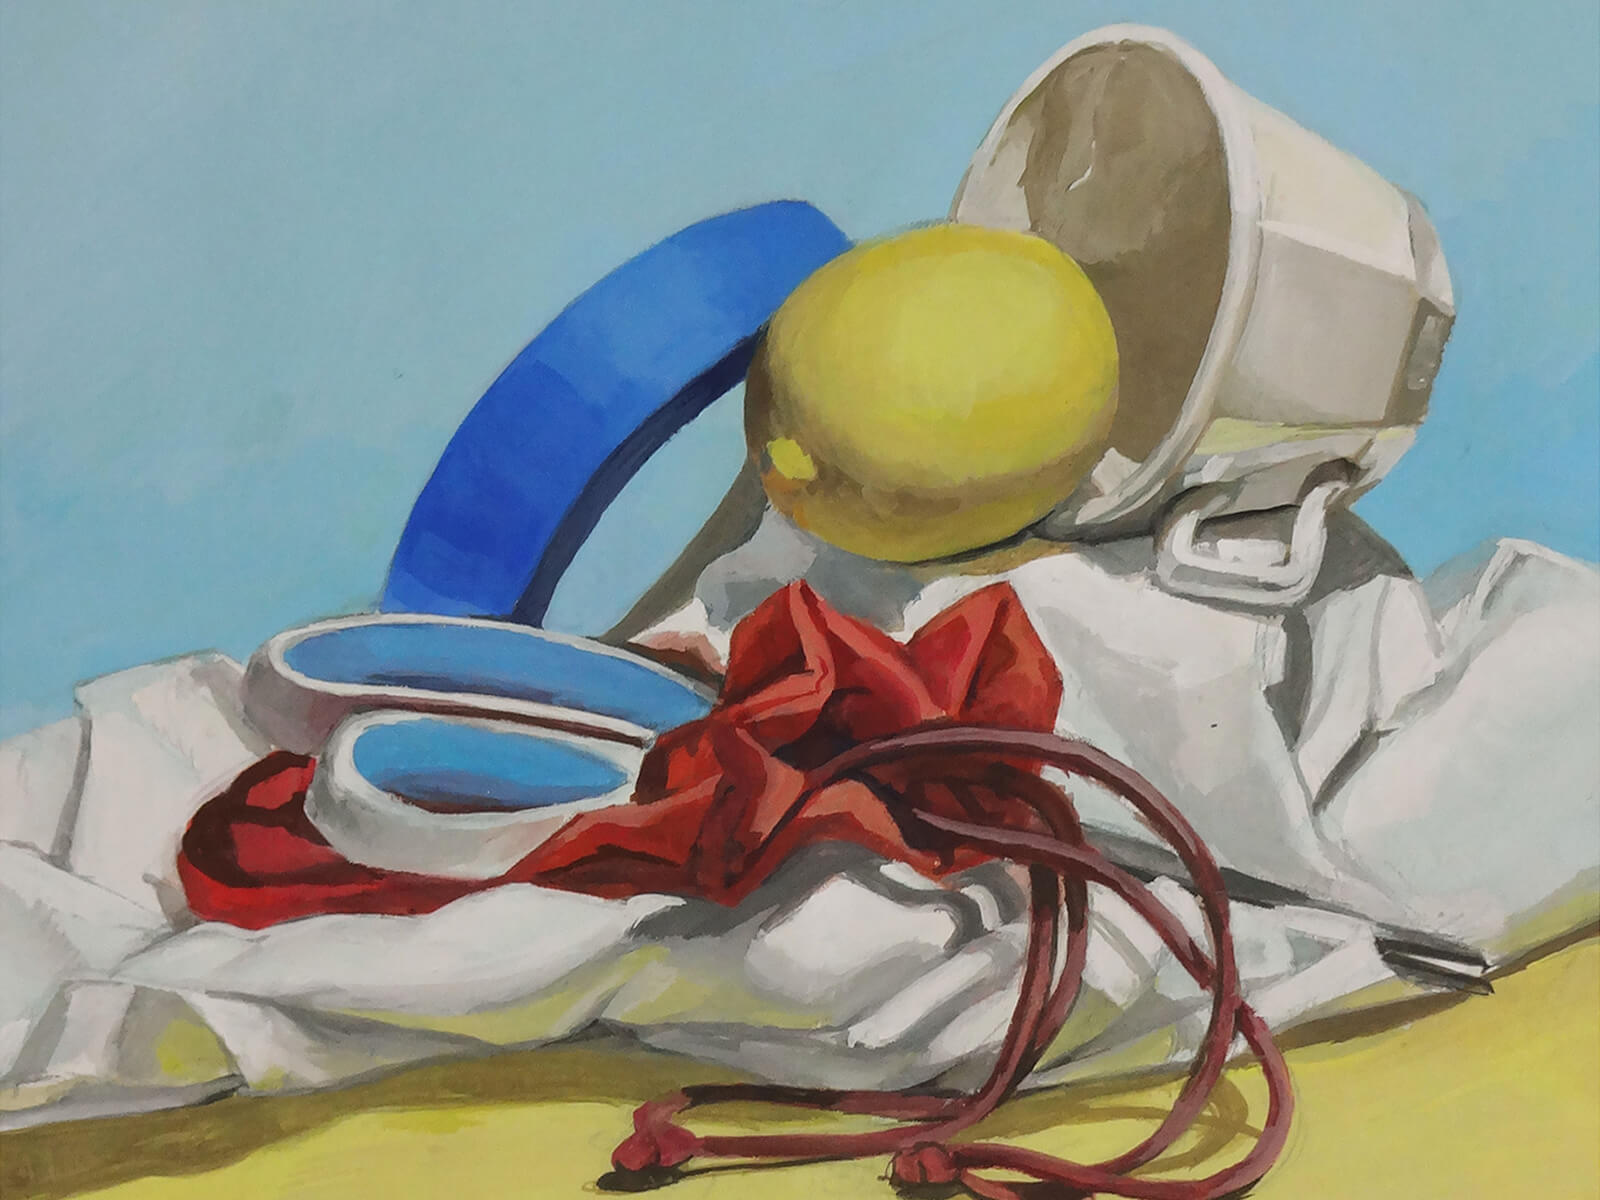 still-life traditional painting of a tea cup, a lemon, scissors, and a roll of blue painter's tape on a white draped sheet